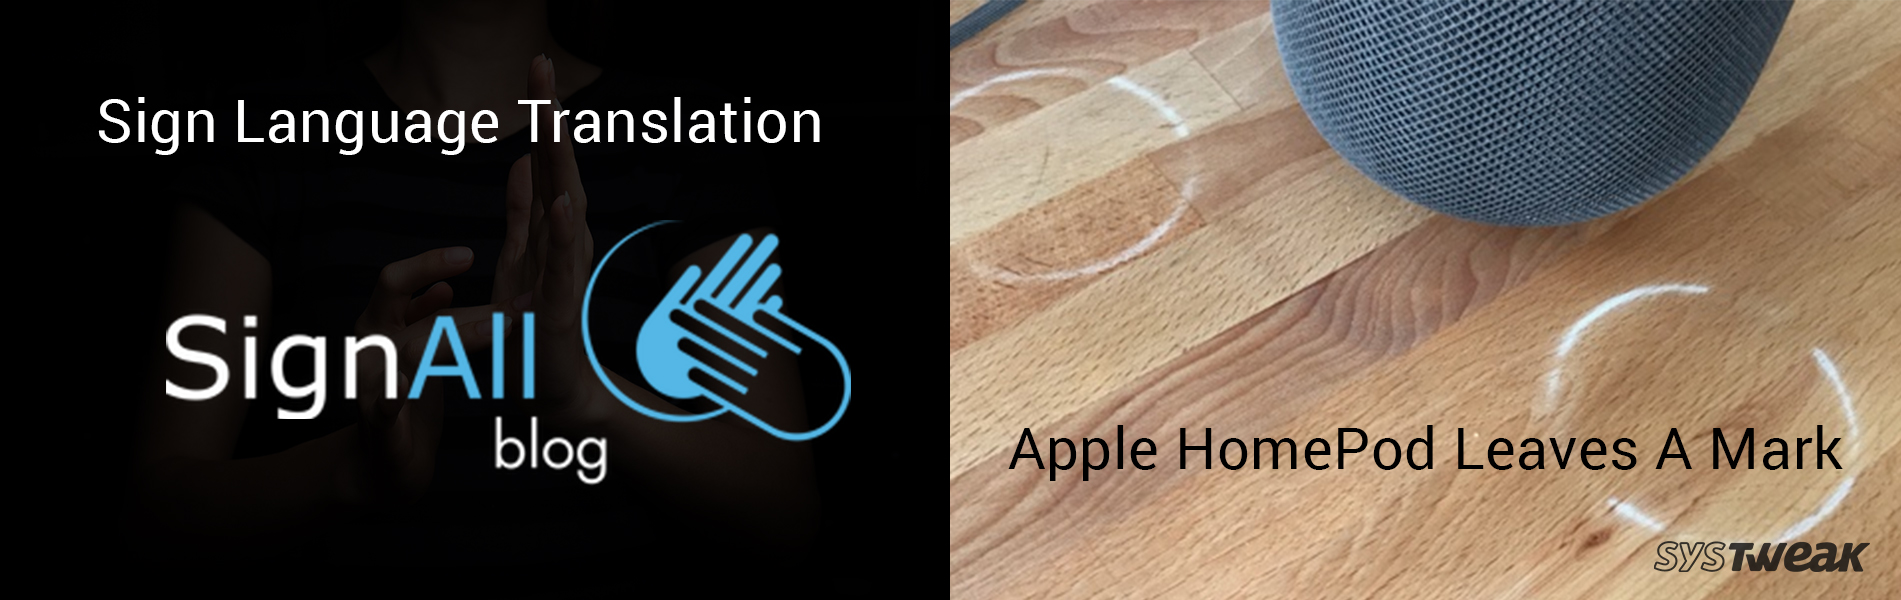 Newsletter: Translate Sign Language & Homepod Not Furniture Friendly